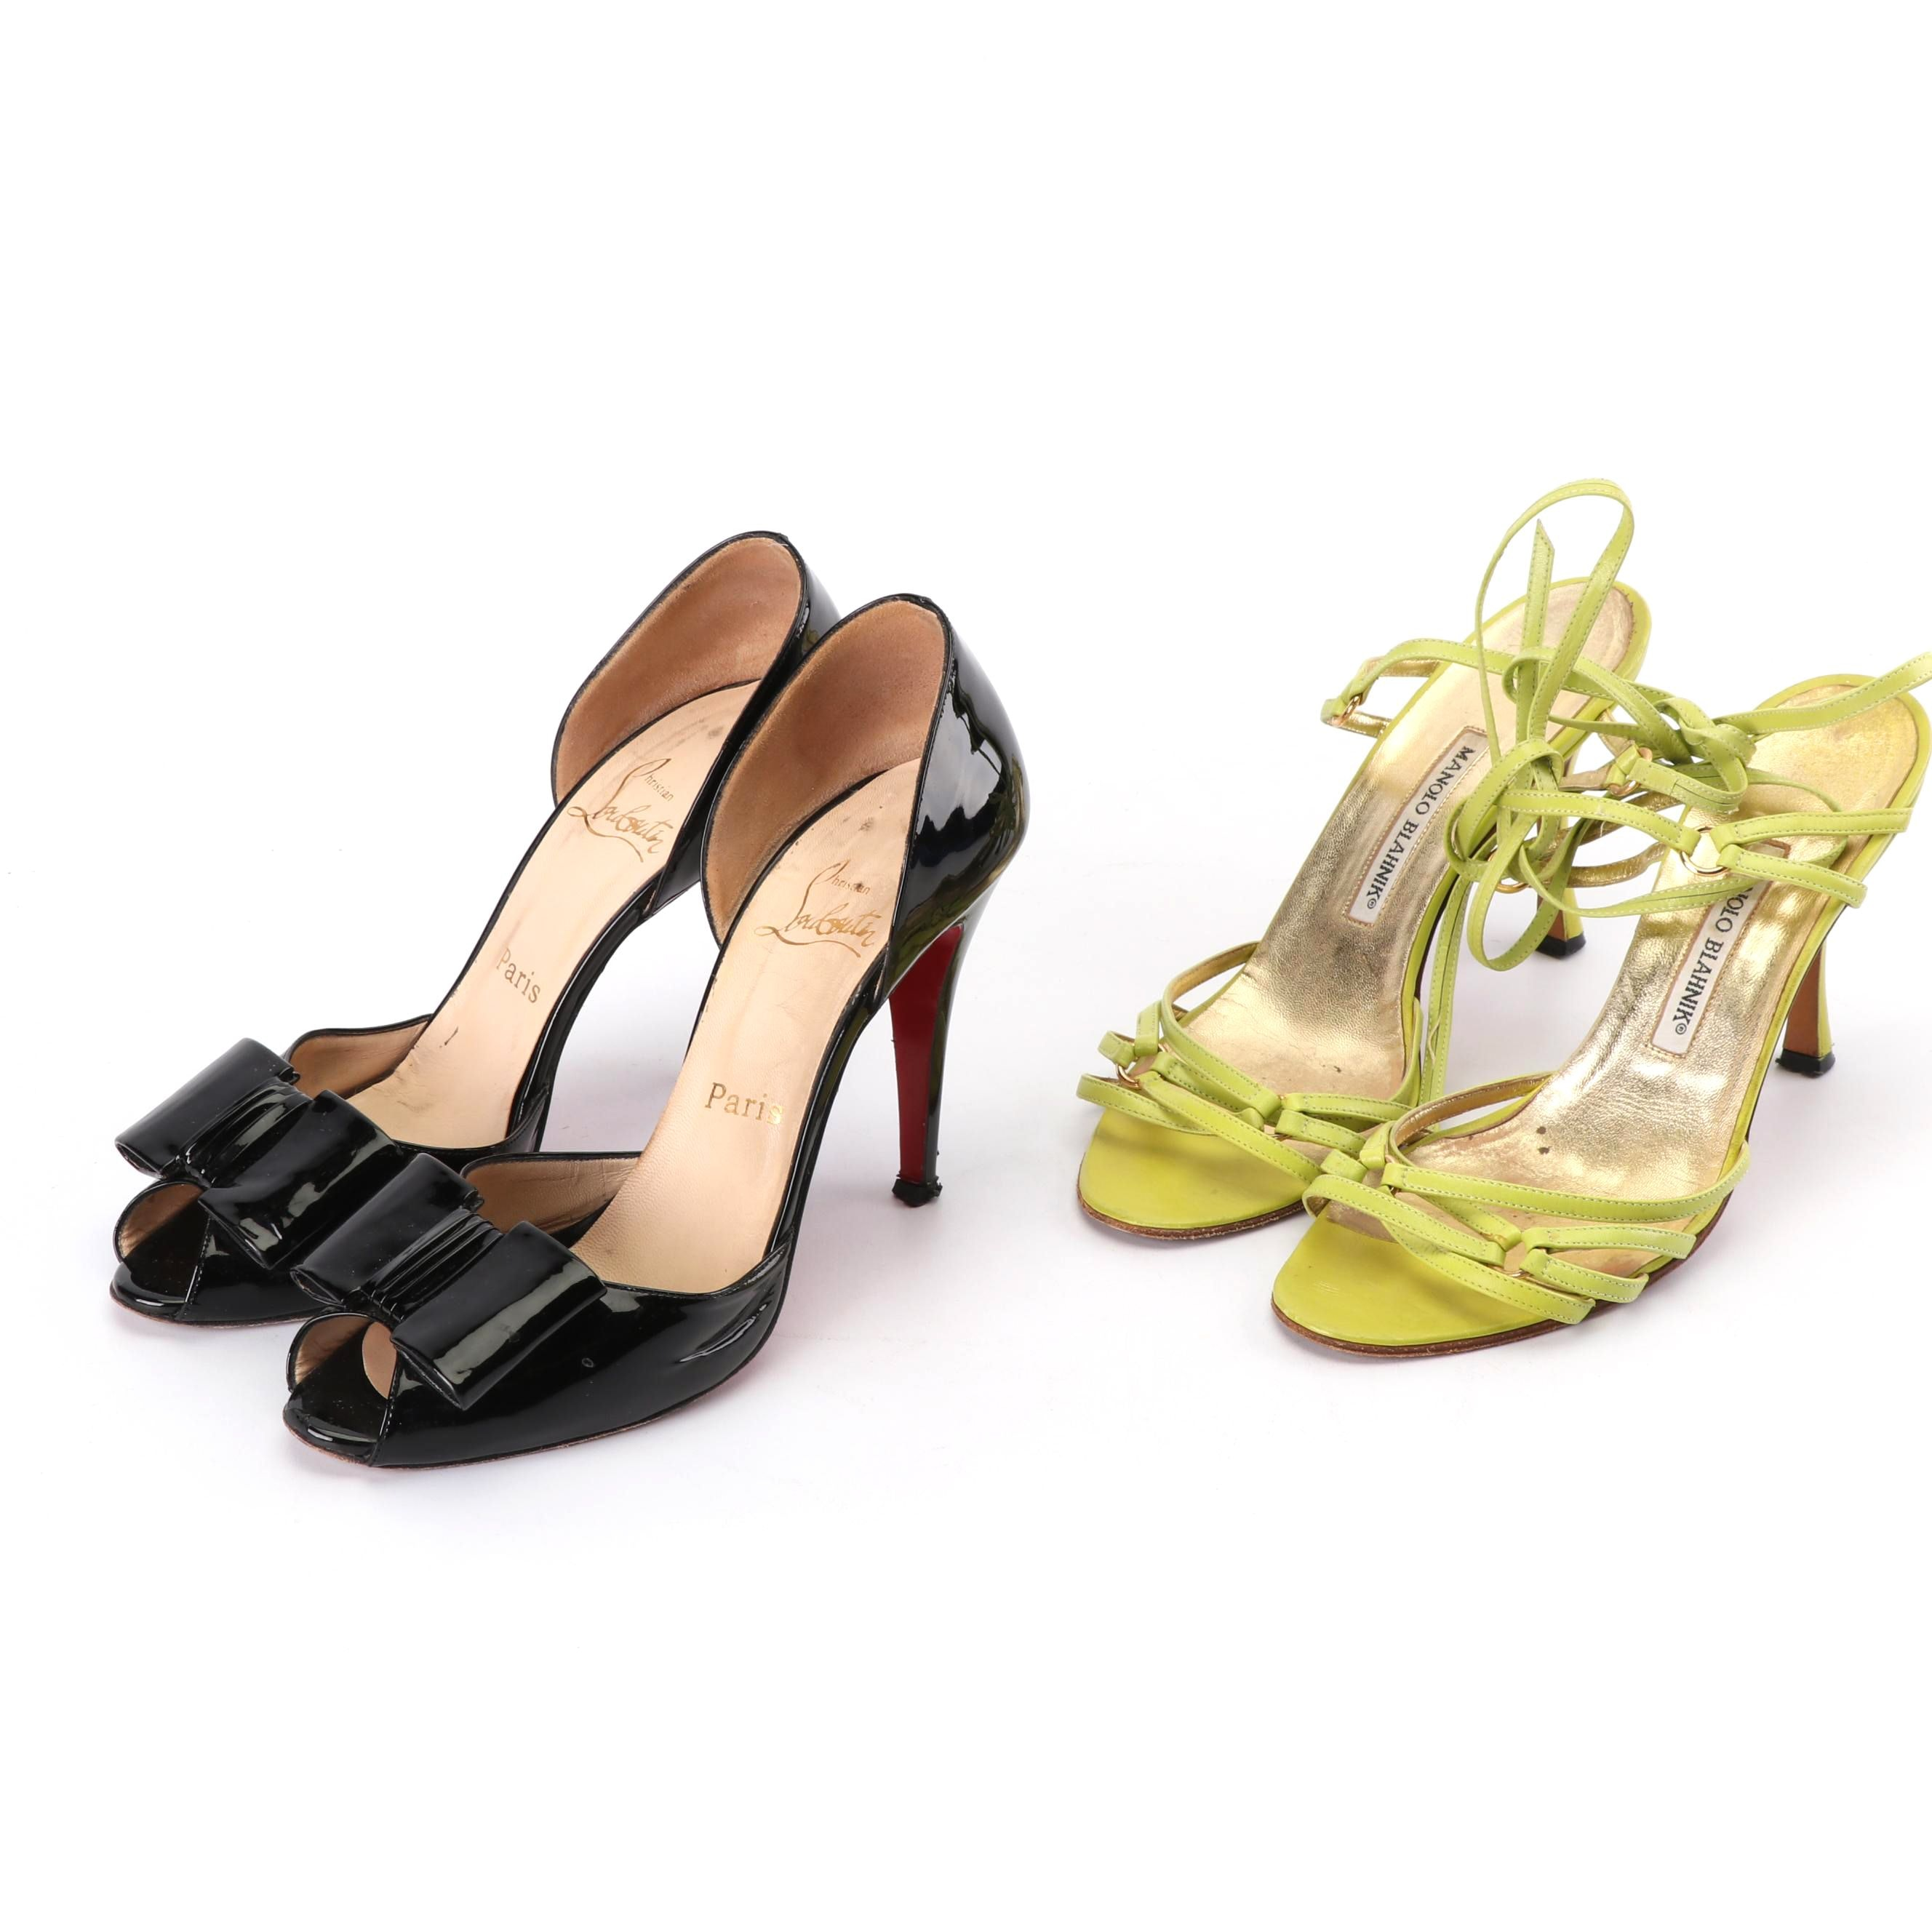 Christian Louboutin Patent Leather Pumps and Manolo Blahnik Strappy Sandals